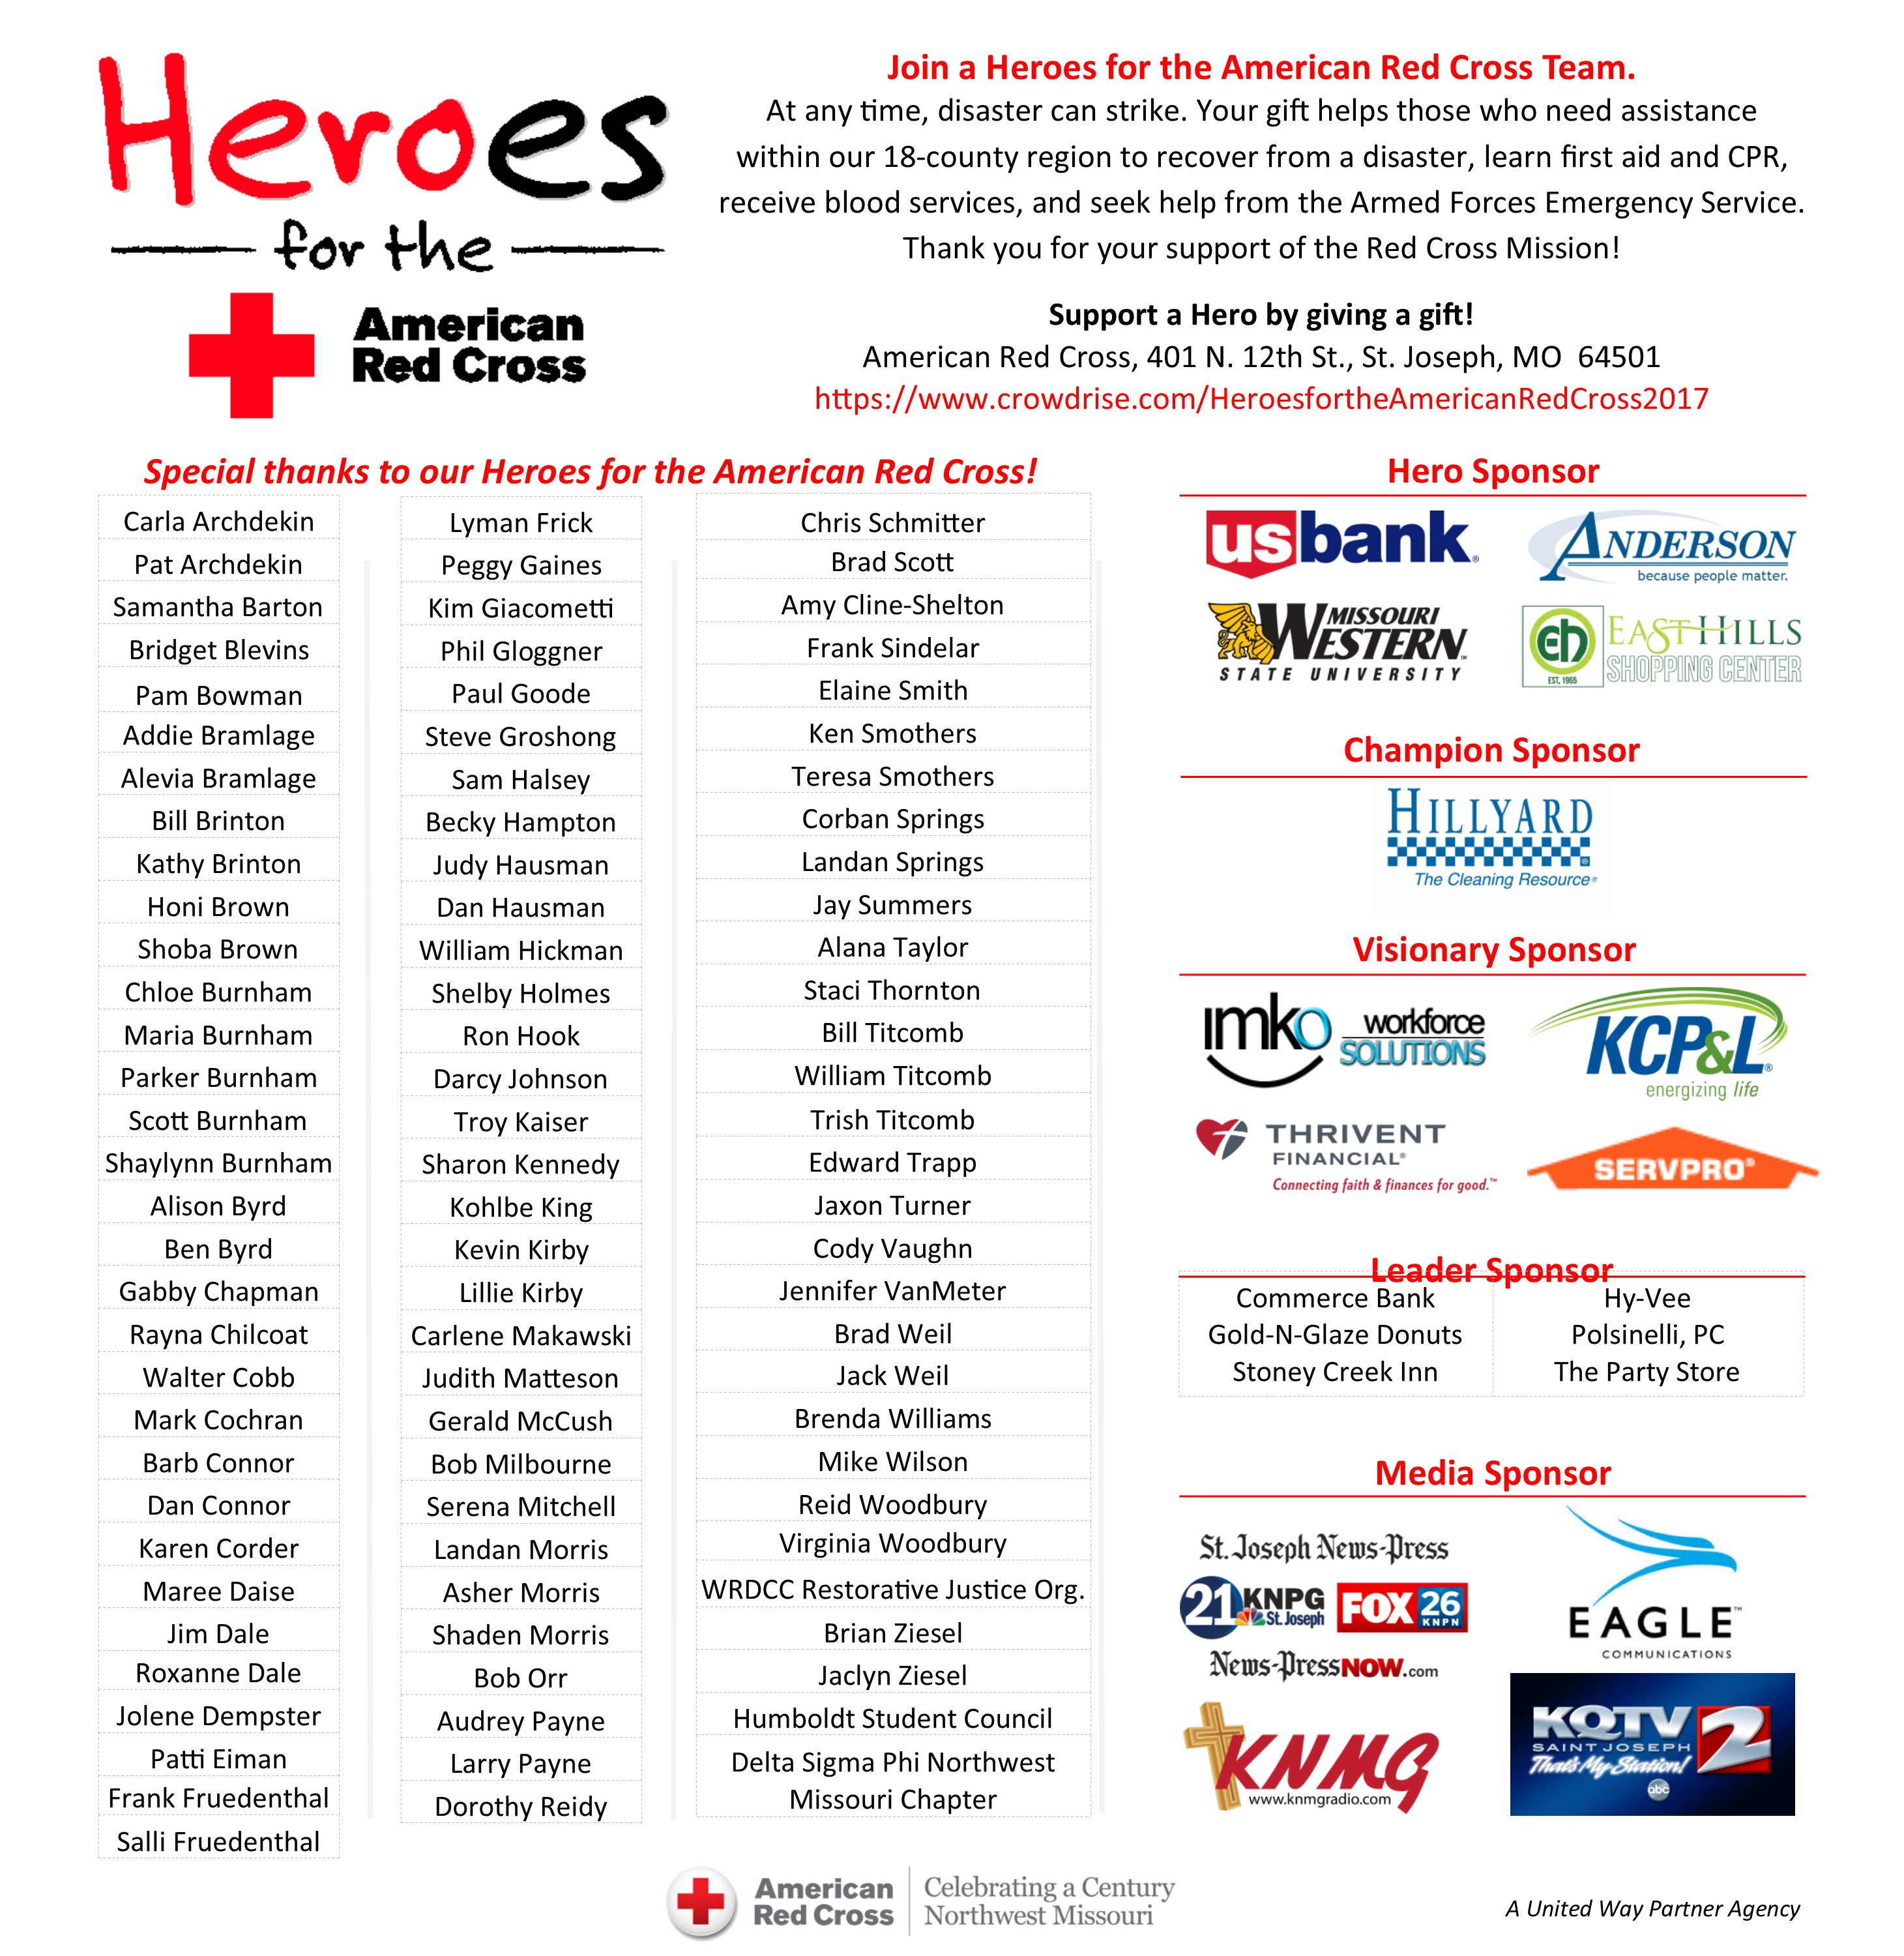 HEROES FOR THE AMERICAN RED CROSS 2017 Photo